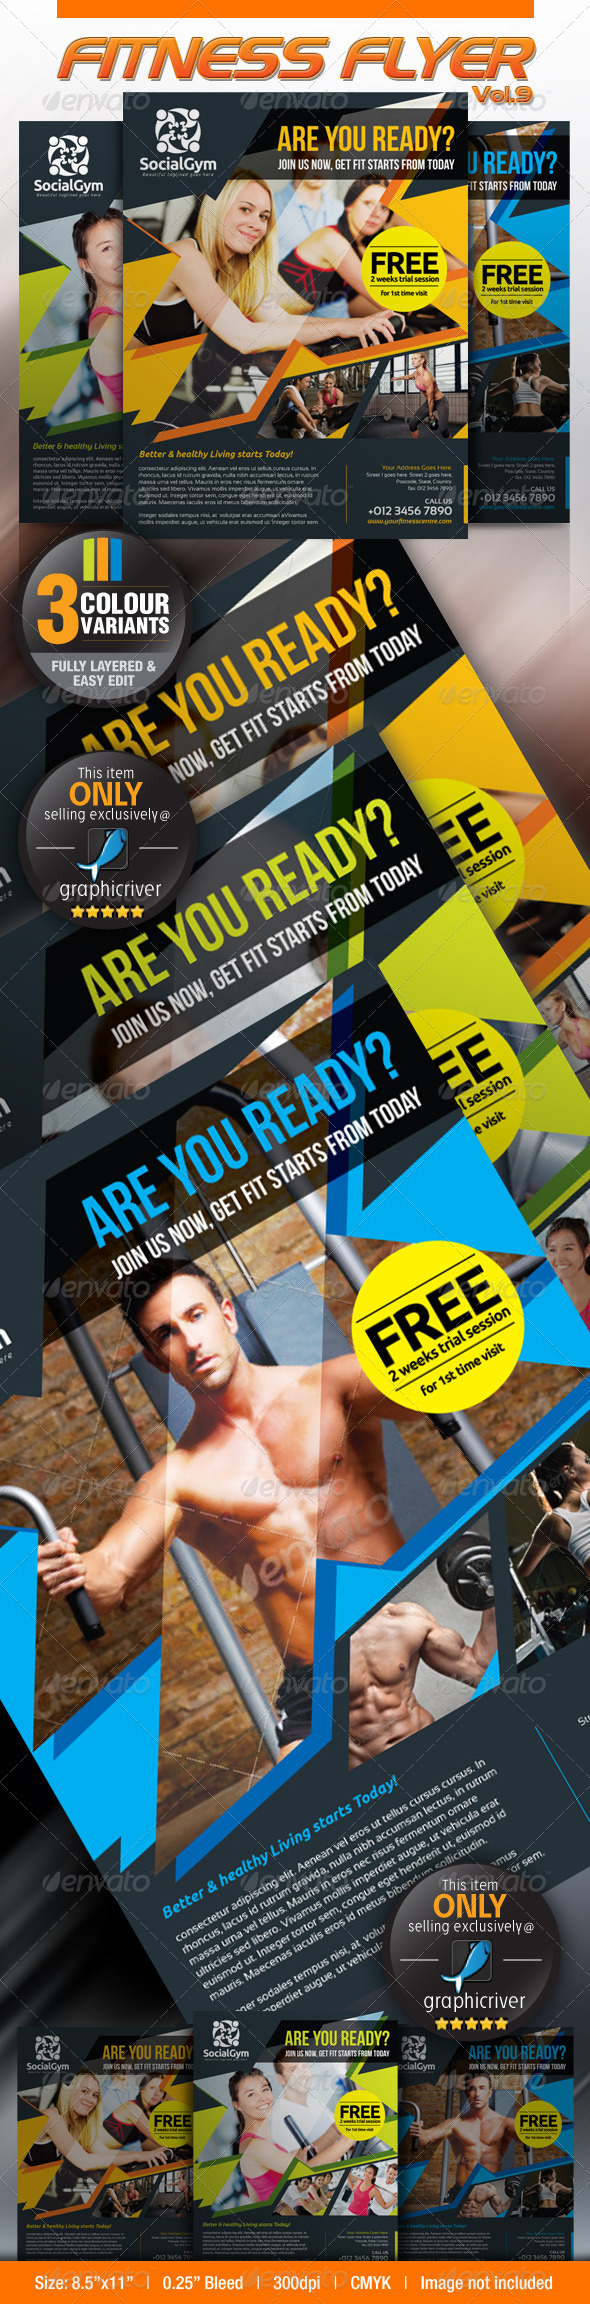 GraphicRiver Fitness Flyer Vol.9 4620679